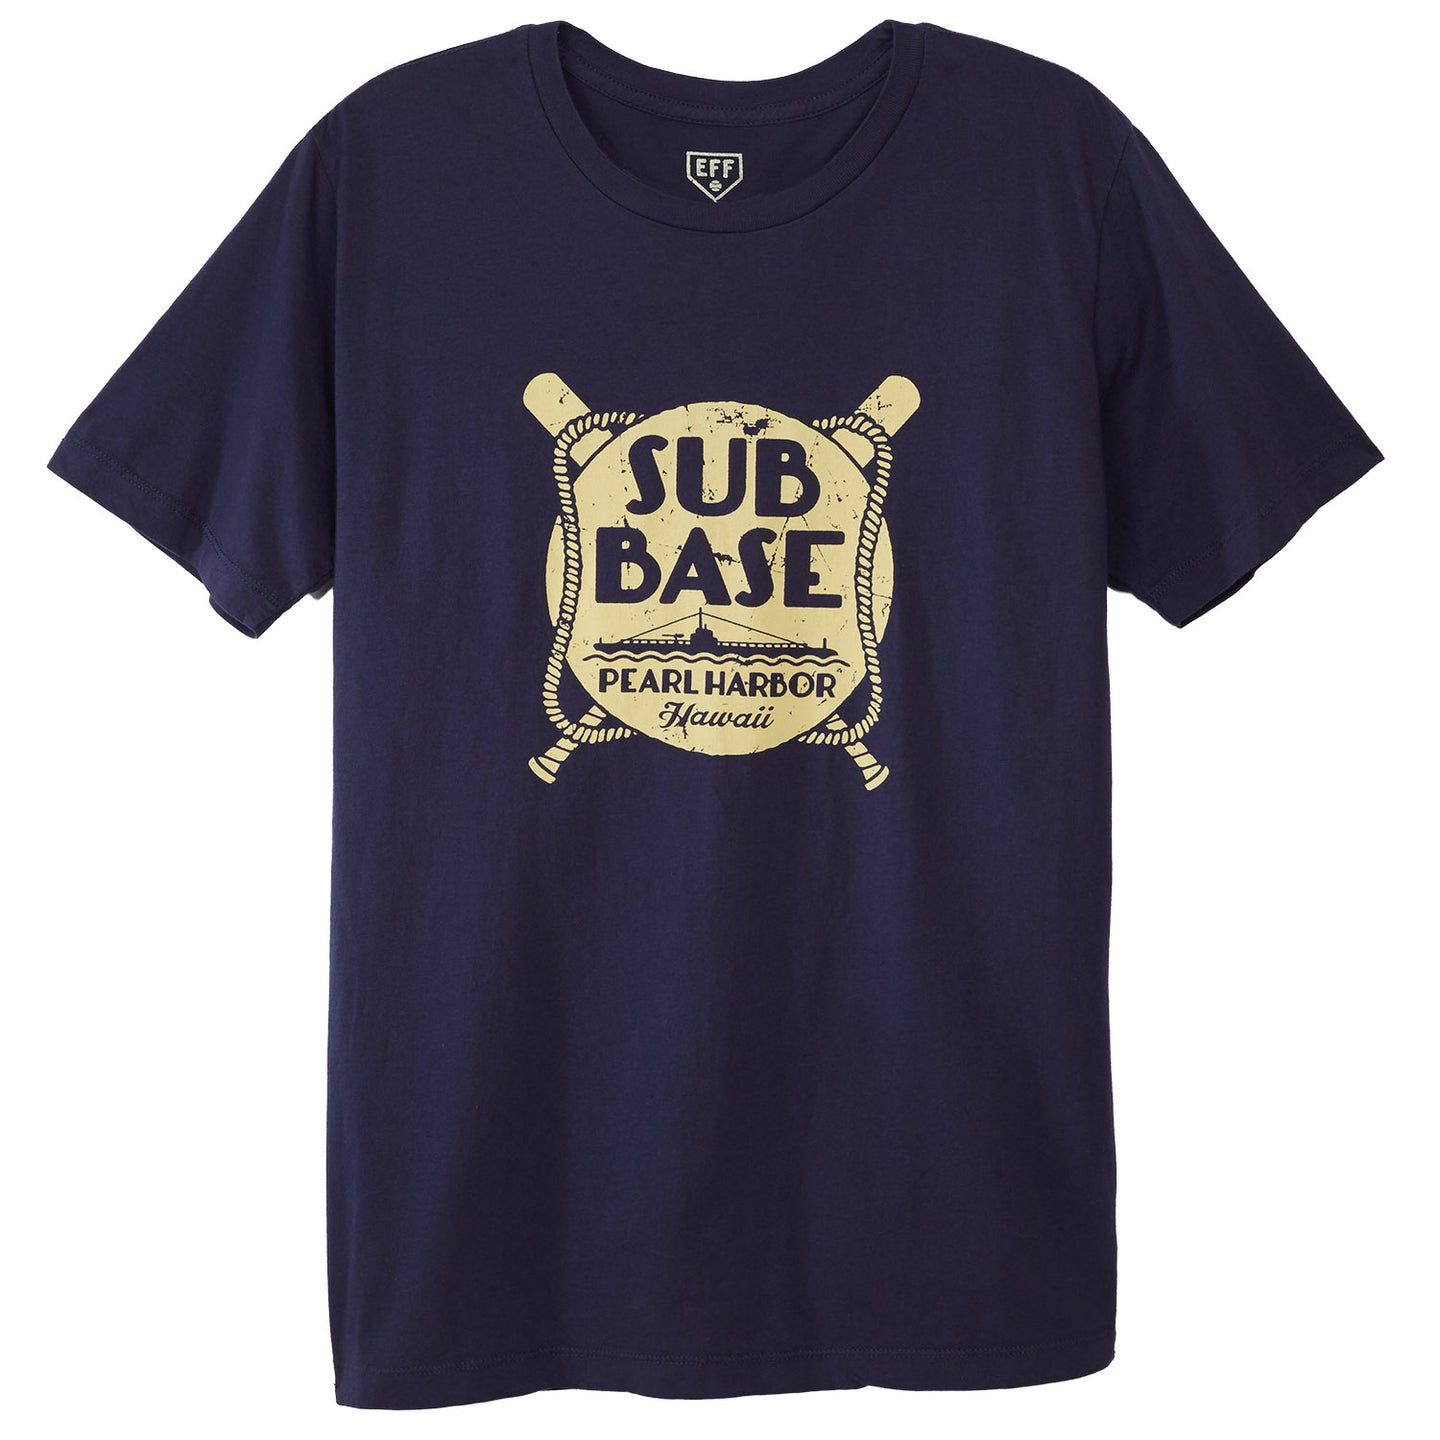 Sub Base Pearl Harbour T-Shirt